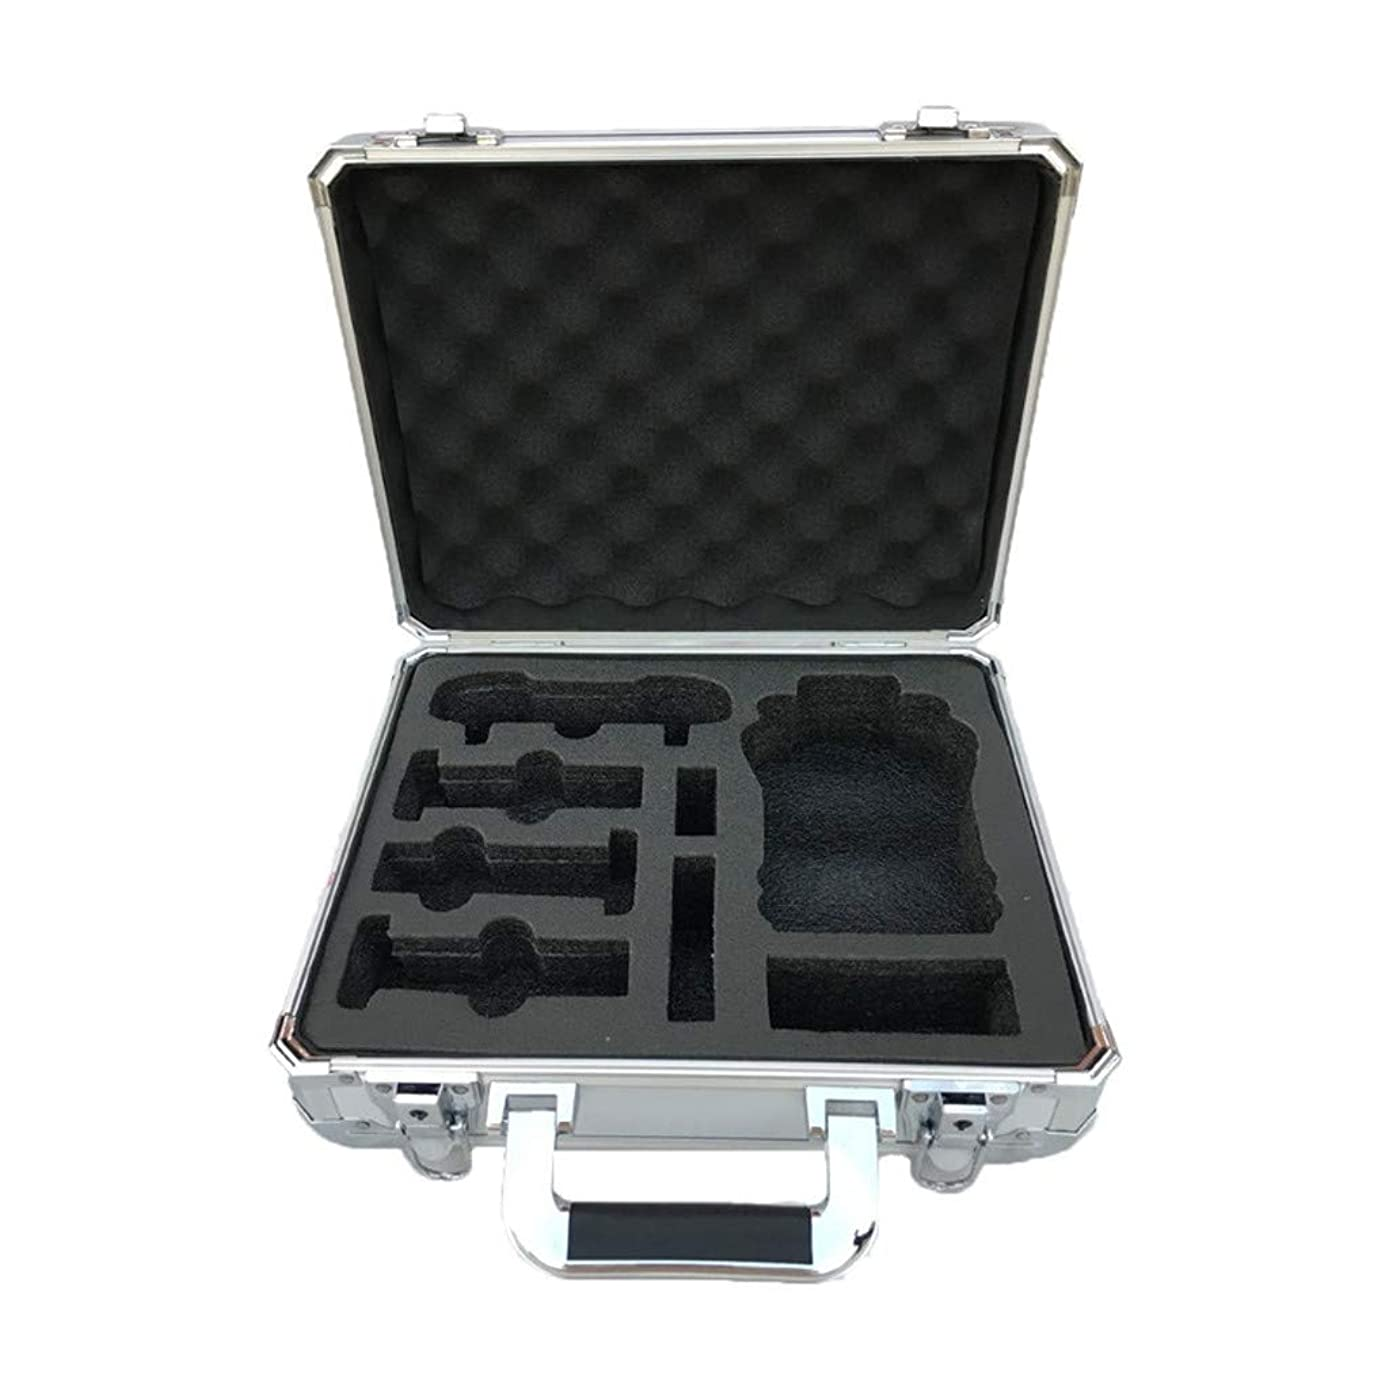 Carrying Case Aluminum Hard Travel Protect Case for Hubsan Zino H117S (Sliver, 330x140x280 mm)